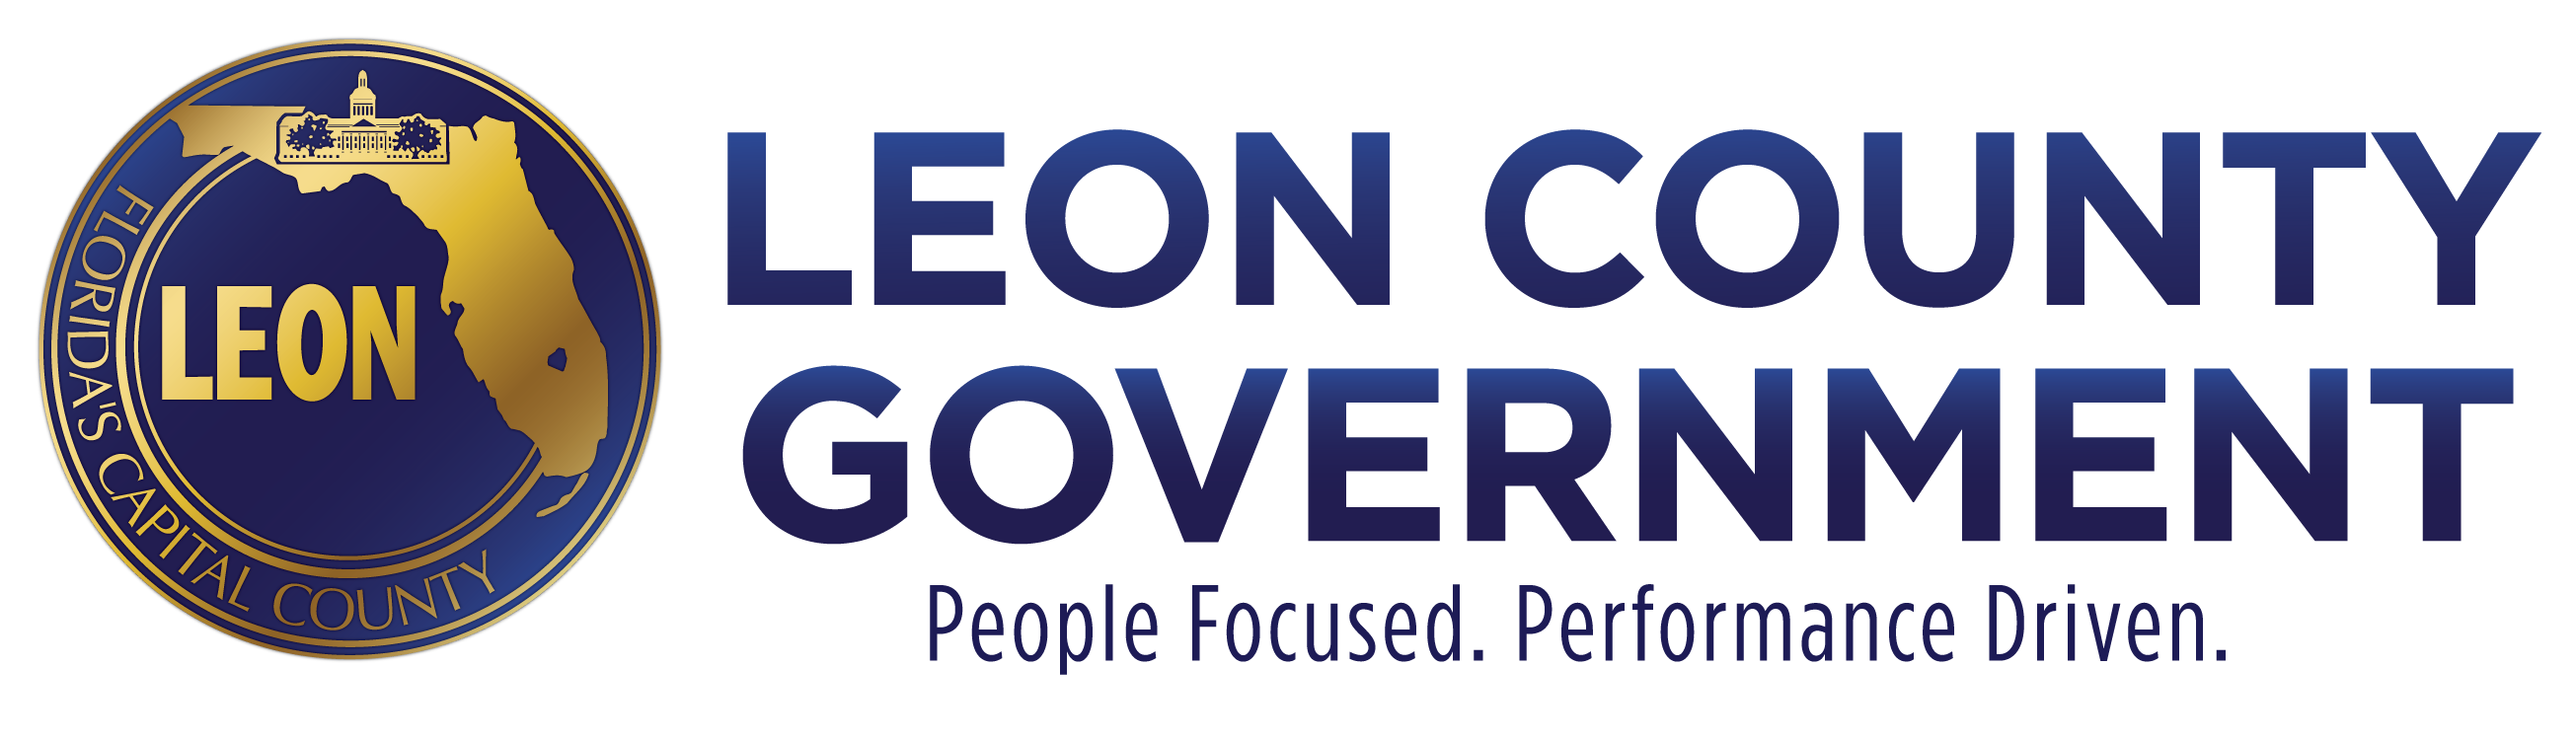 Leon-County-Government-Logo-01